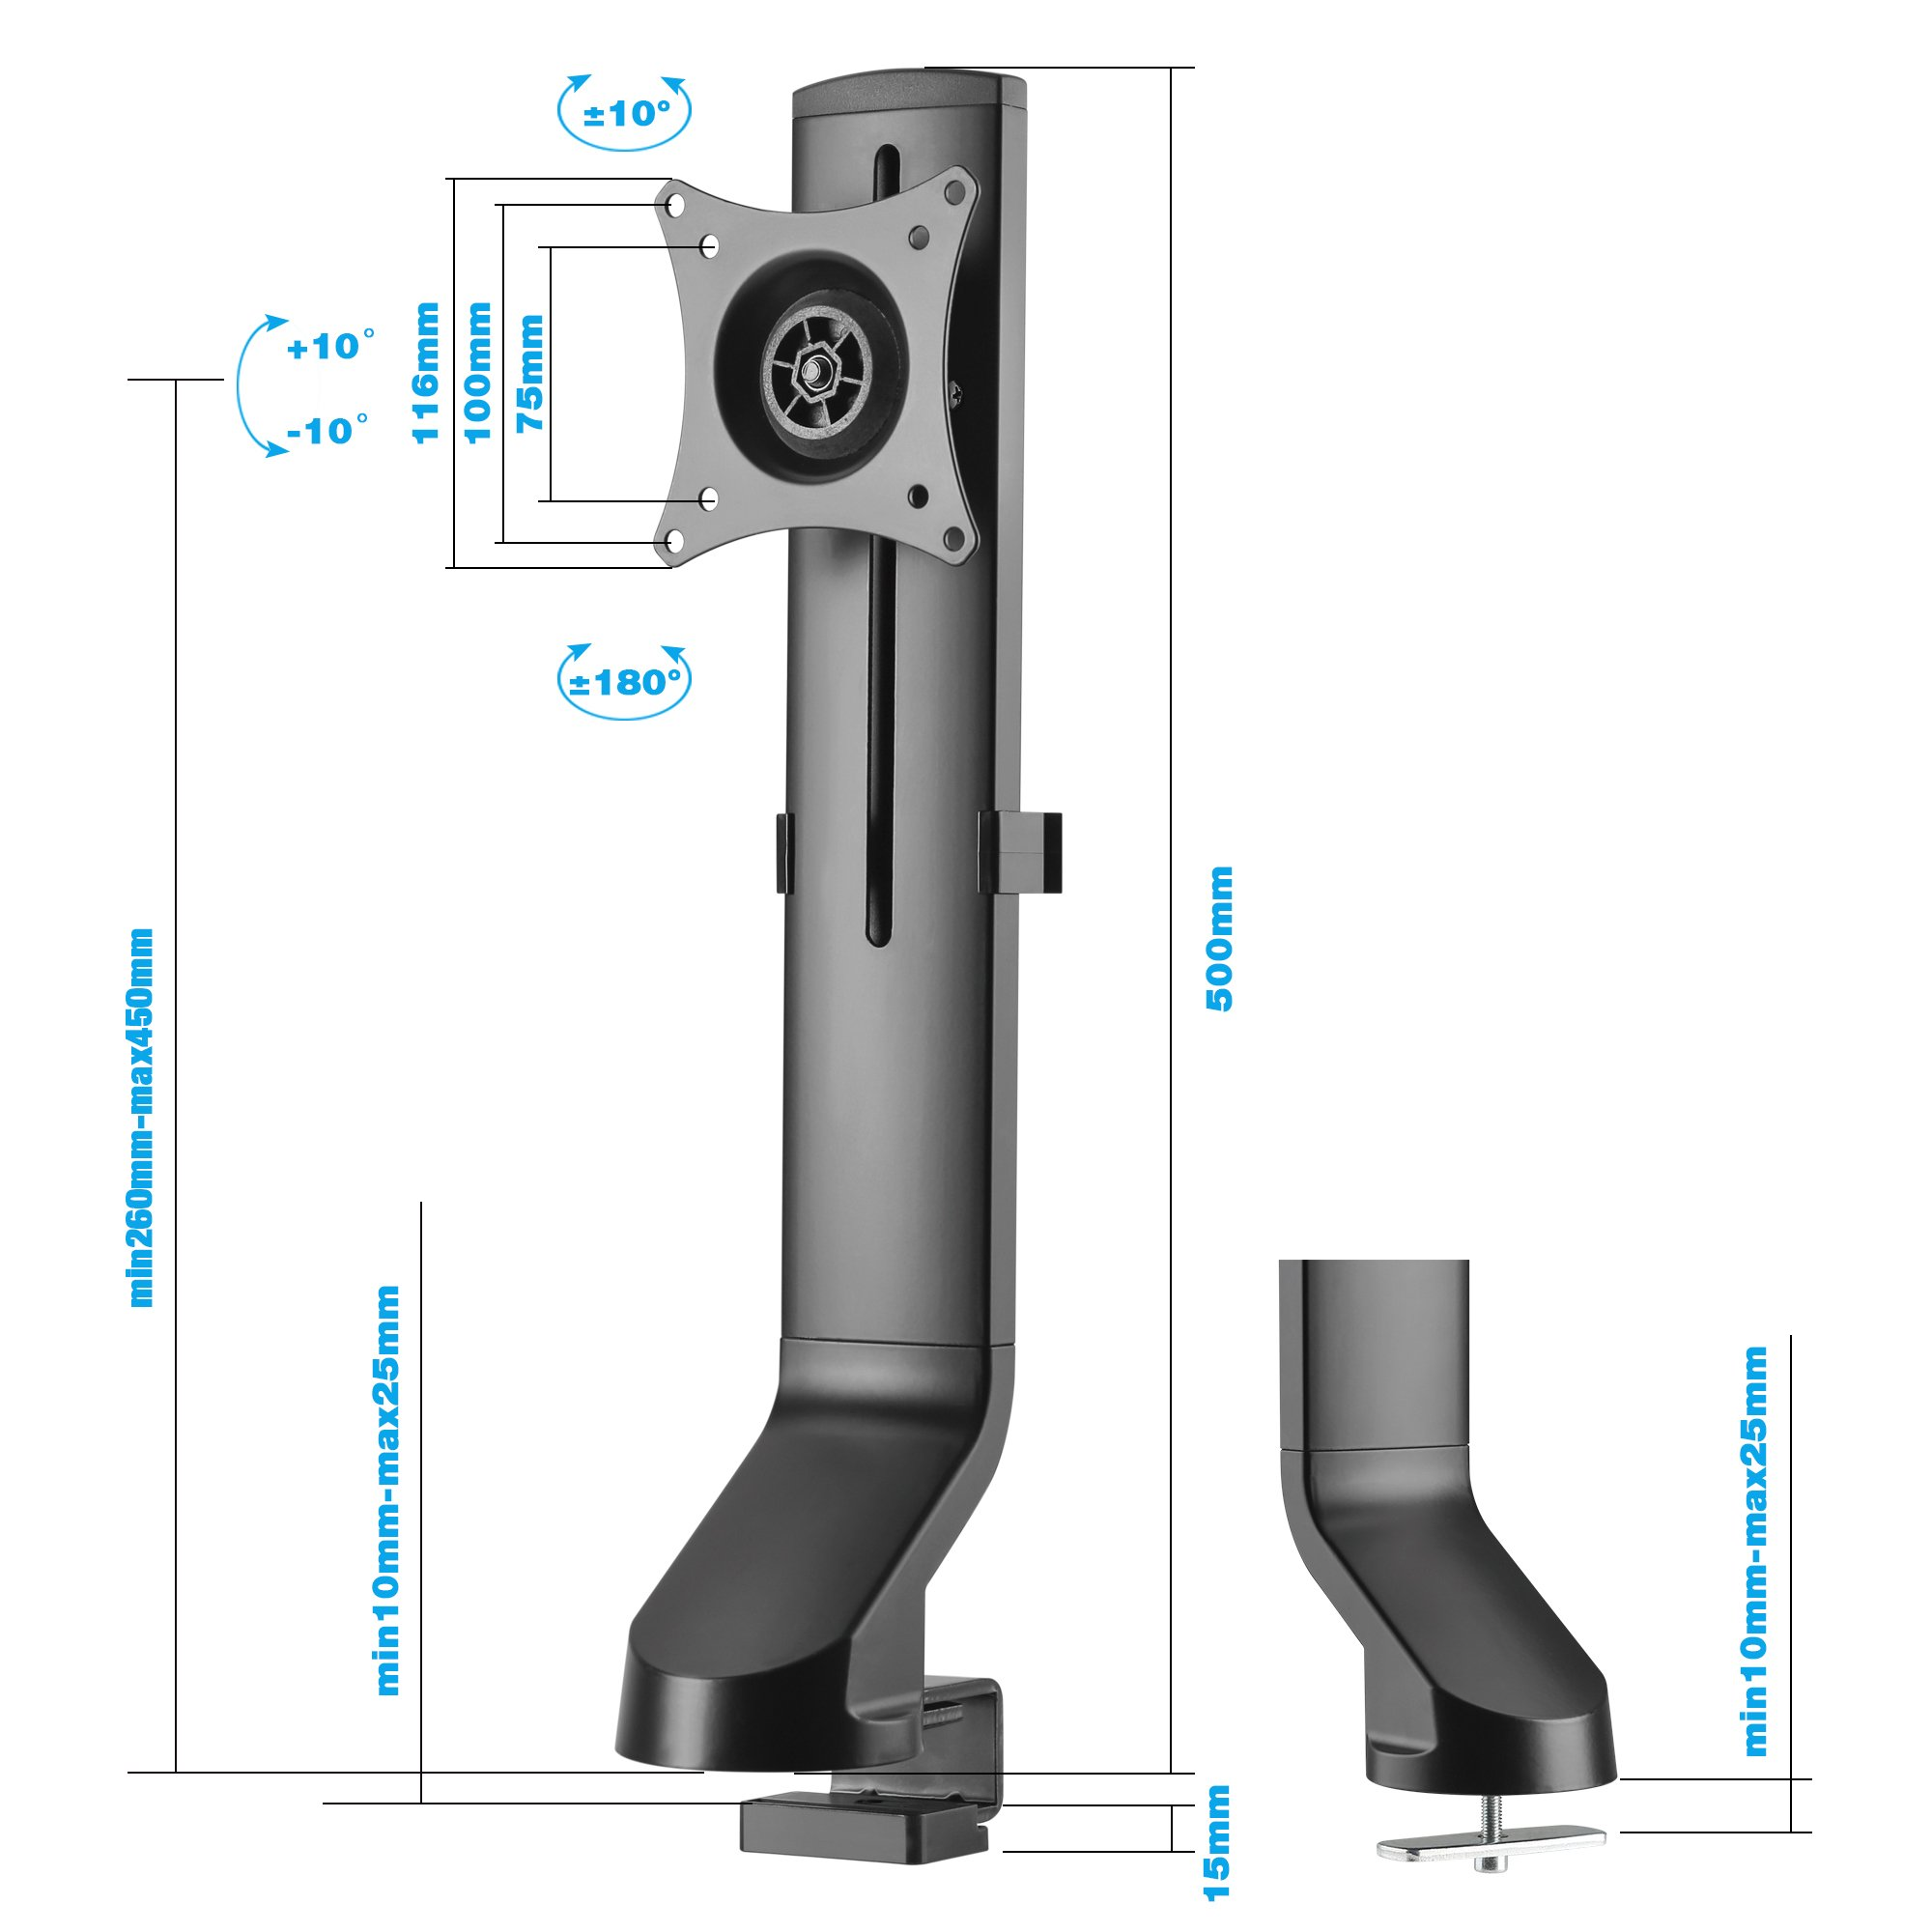 AVLT-Power Single Monitor Mount for Standing Desk Workstation - Extra Height Adjustment Range - Heavy Duty - Holds 17'' to 32'' Screens, up to 17.6 lbs, VESA 75x75mm 100x100mm by AVLT-Power (Image #7)